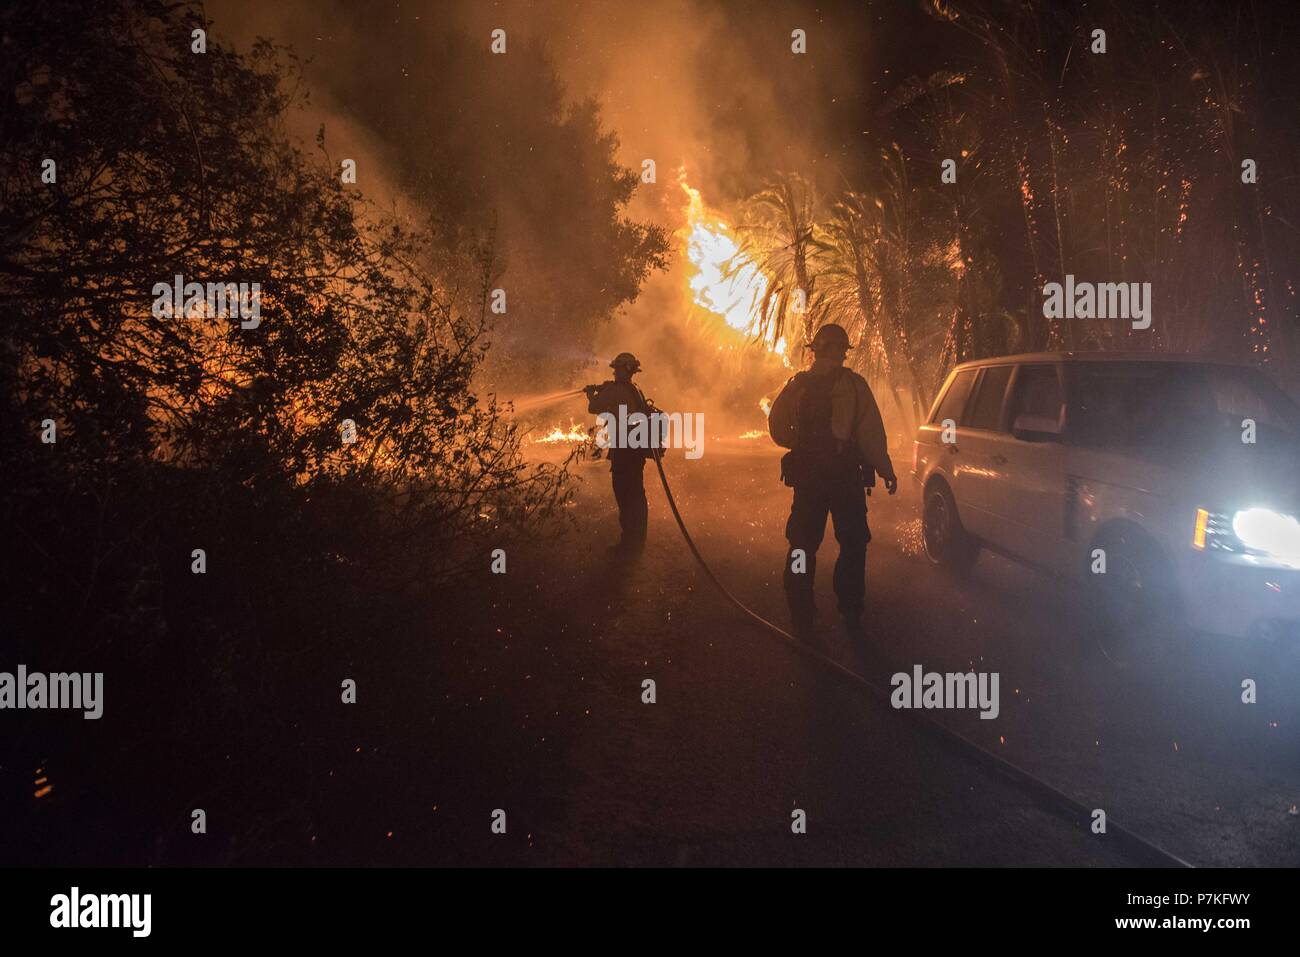 Goleta, California, USA. 6th July, 2018. Firefighters fight the HOLIDAY FIRE as residents evacuate the area north of Fairview Avenue Friday evening. Credit: Erick Madrid/ZUMA Wire/Alamy Live News - Stock Image